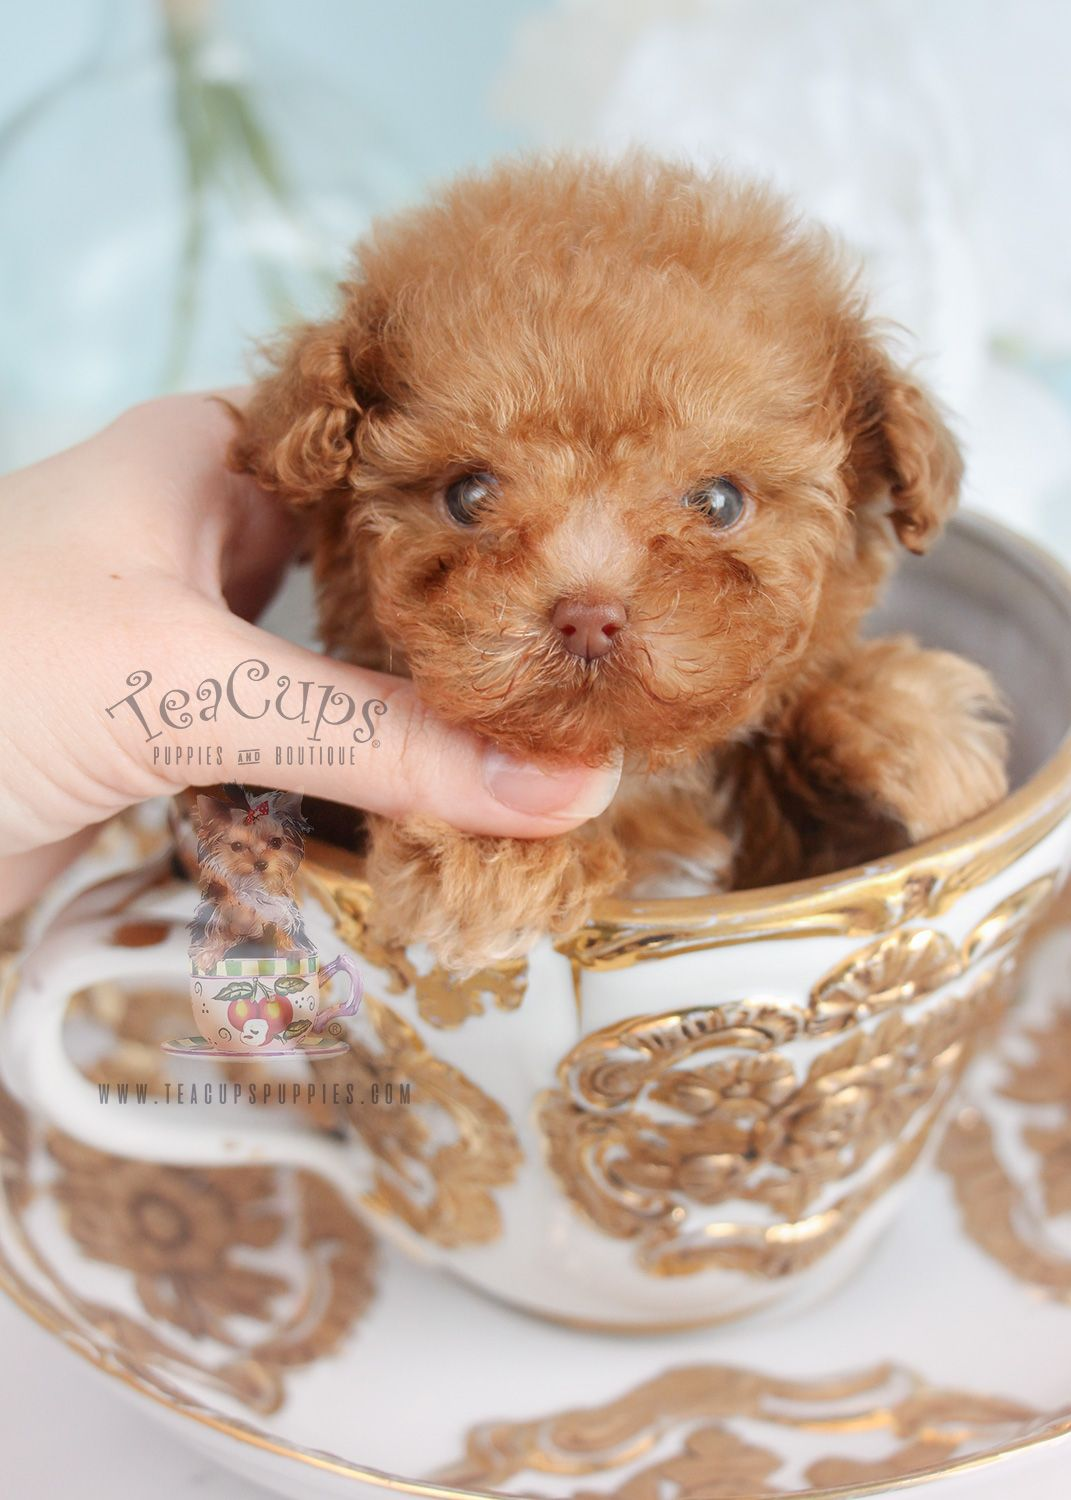 Gorgeous Teacup Poodle Puppy By Teacup Puppies Boutique Teacuppoodle Poodle Toypoodle Microteacup Mi Teacup Puppies Teacup Poodle Puppies Poodle Puppy